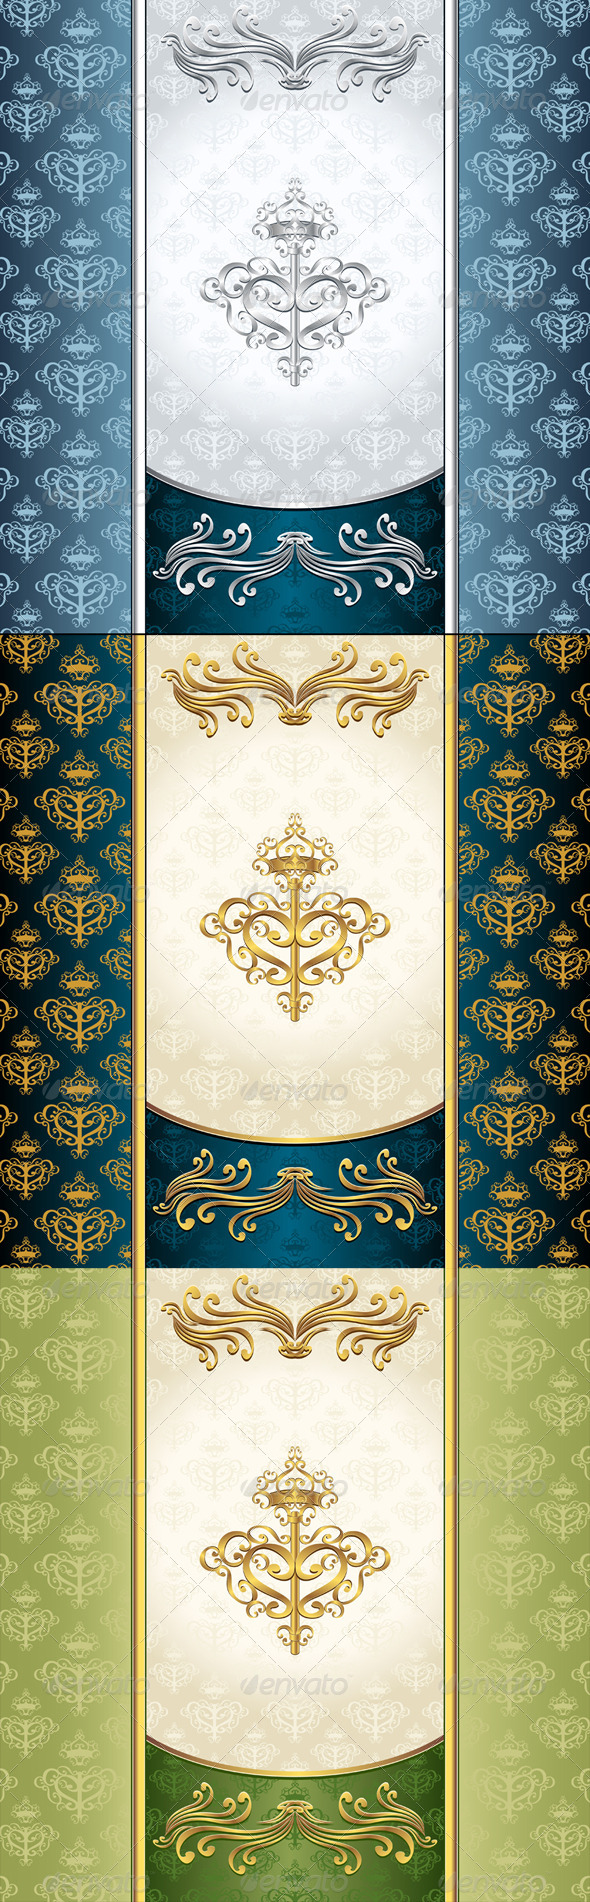 GraphicRiver Royal Victorian Background with Seamless Pattern 6363906